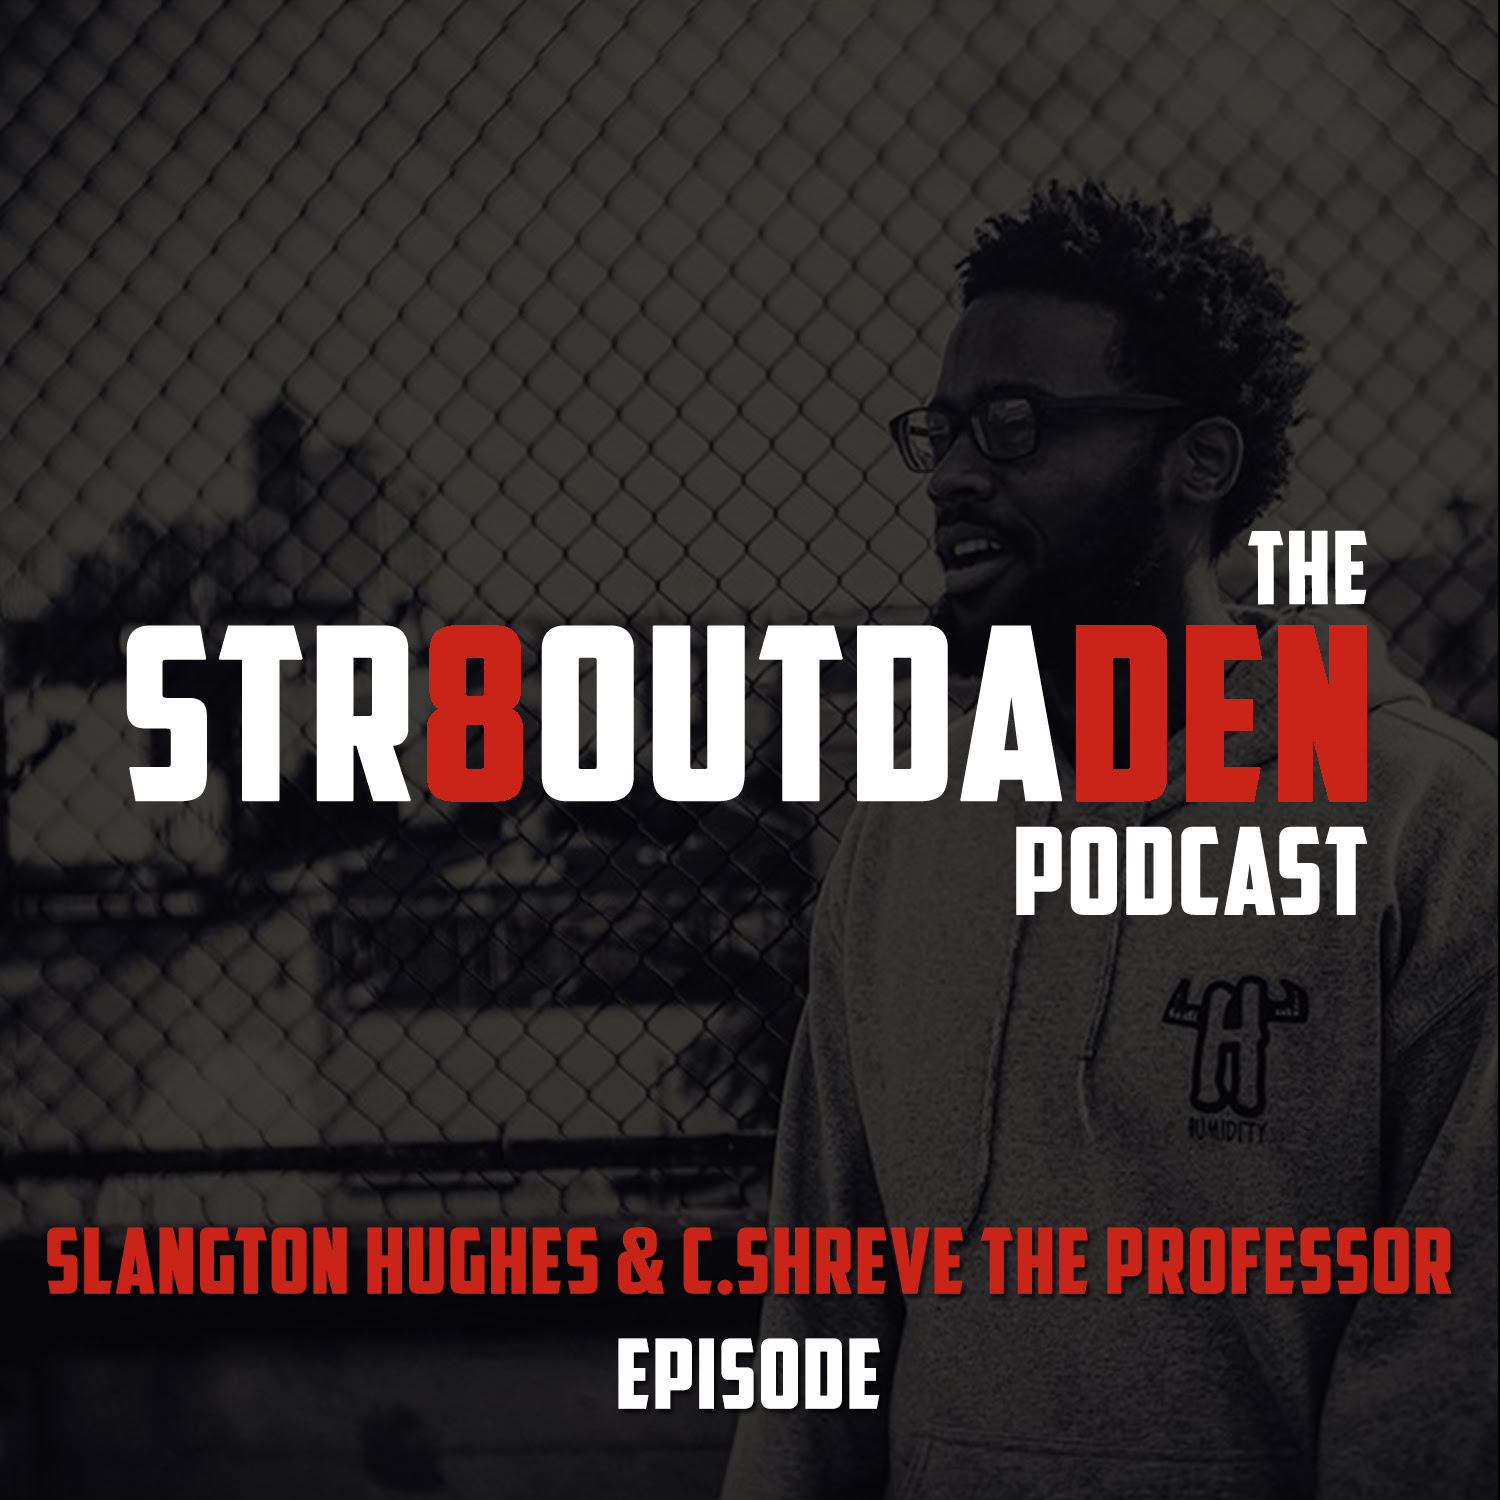 The Str8OutDaDen Podcast : Procuring The 40 Feat. Slangston Hughes & C.Shreve The Professor